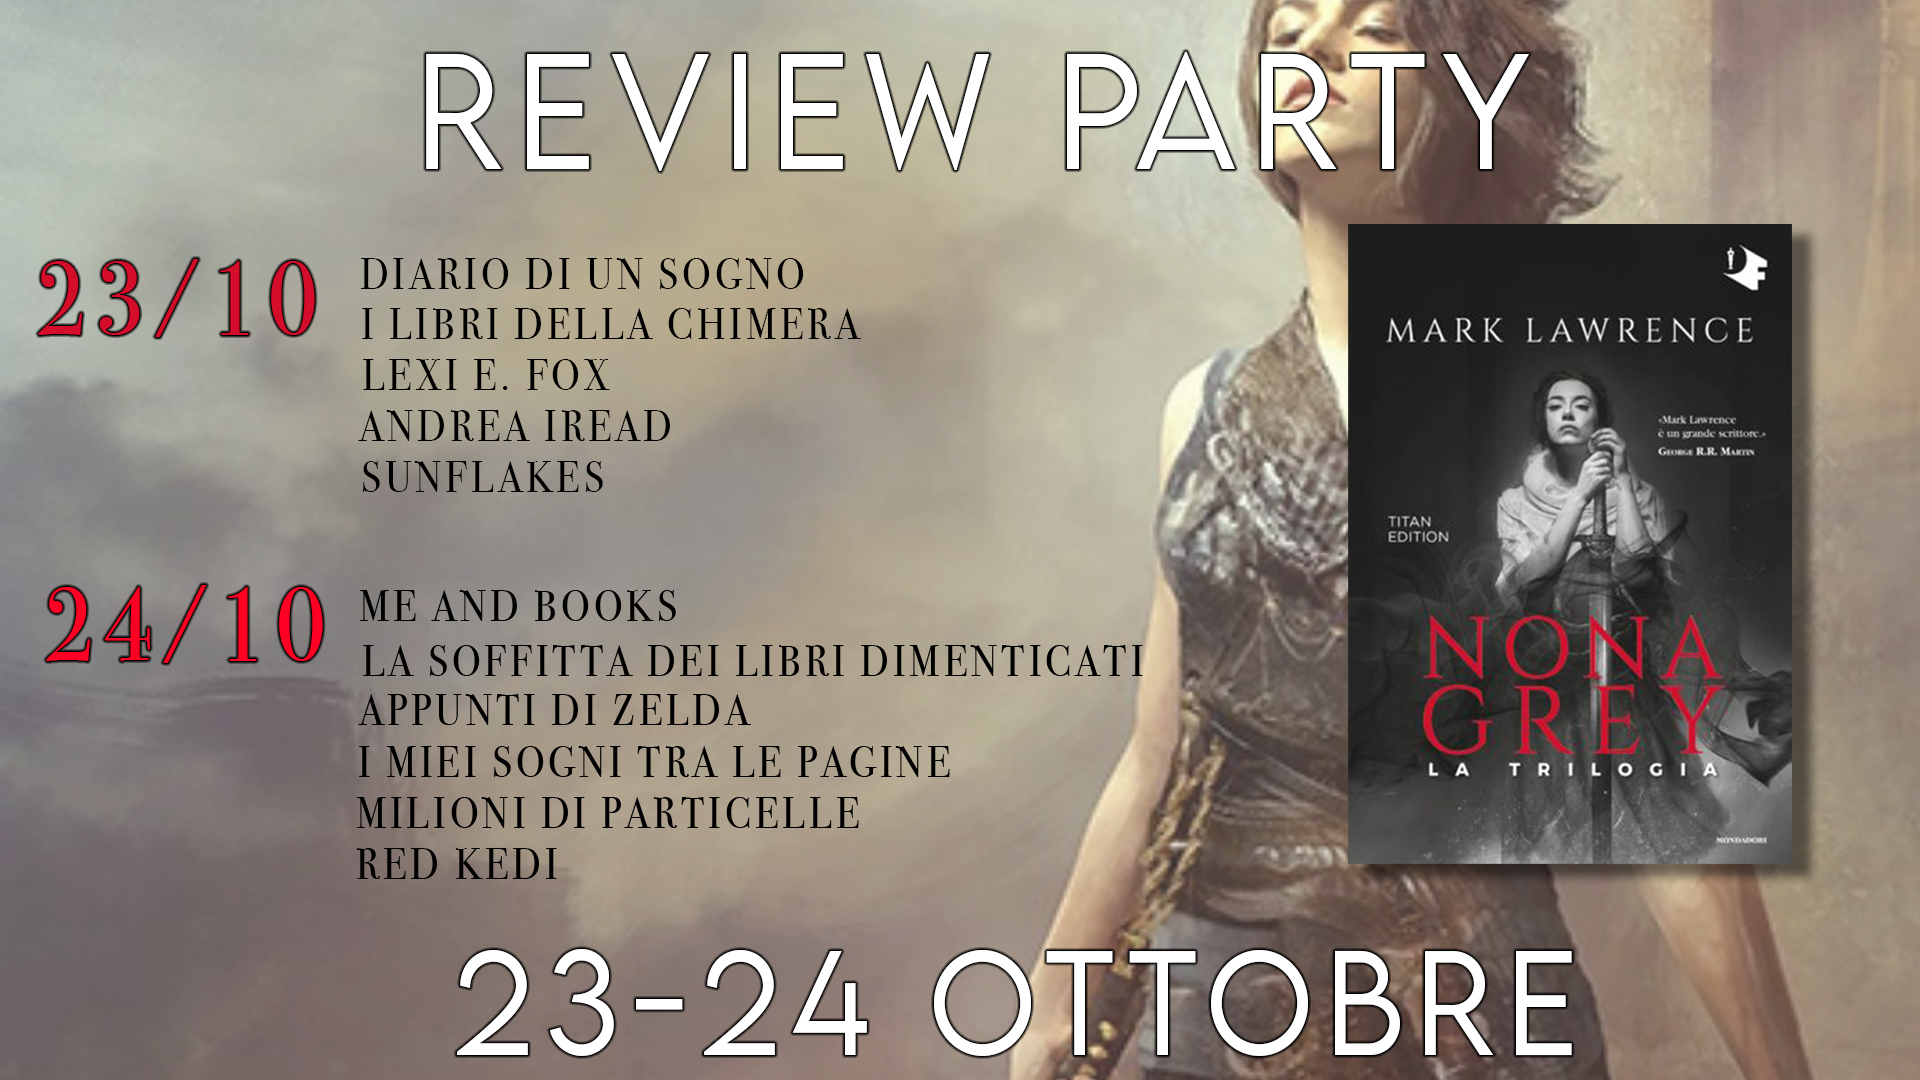 Review Party - Nona Grey 2 di Mark Lawrence